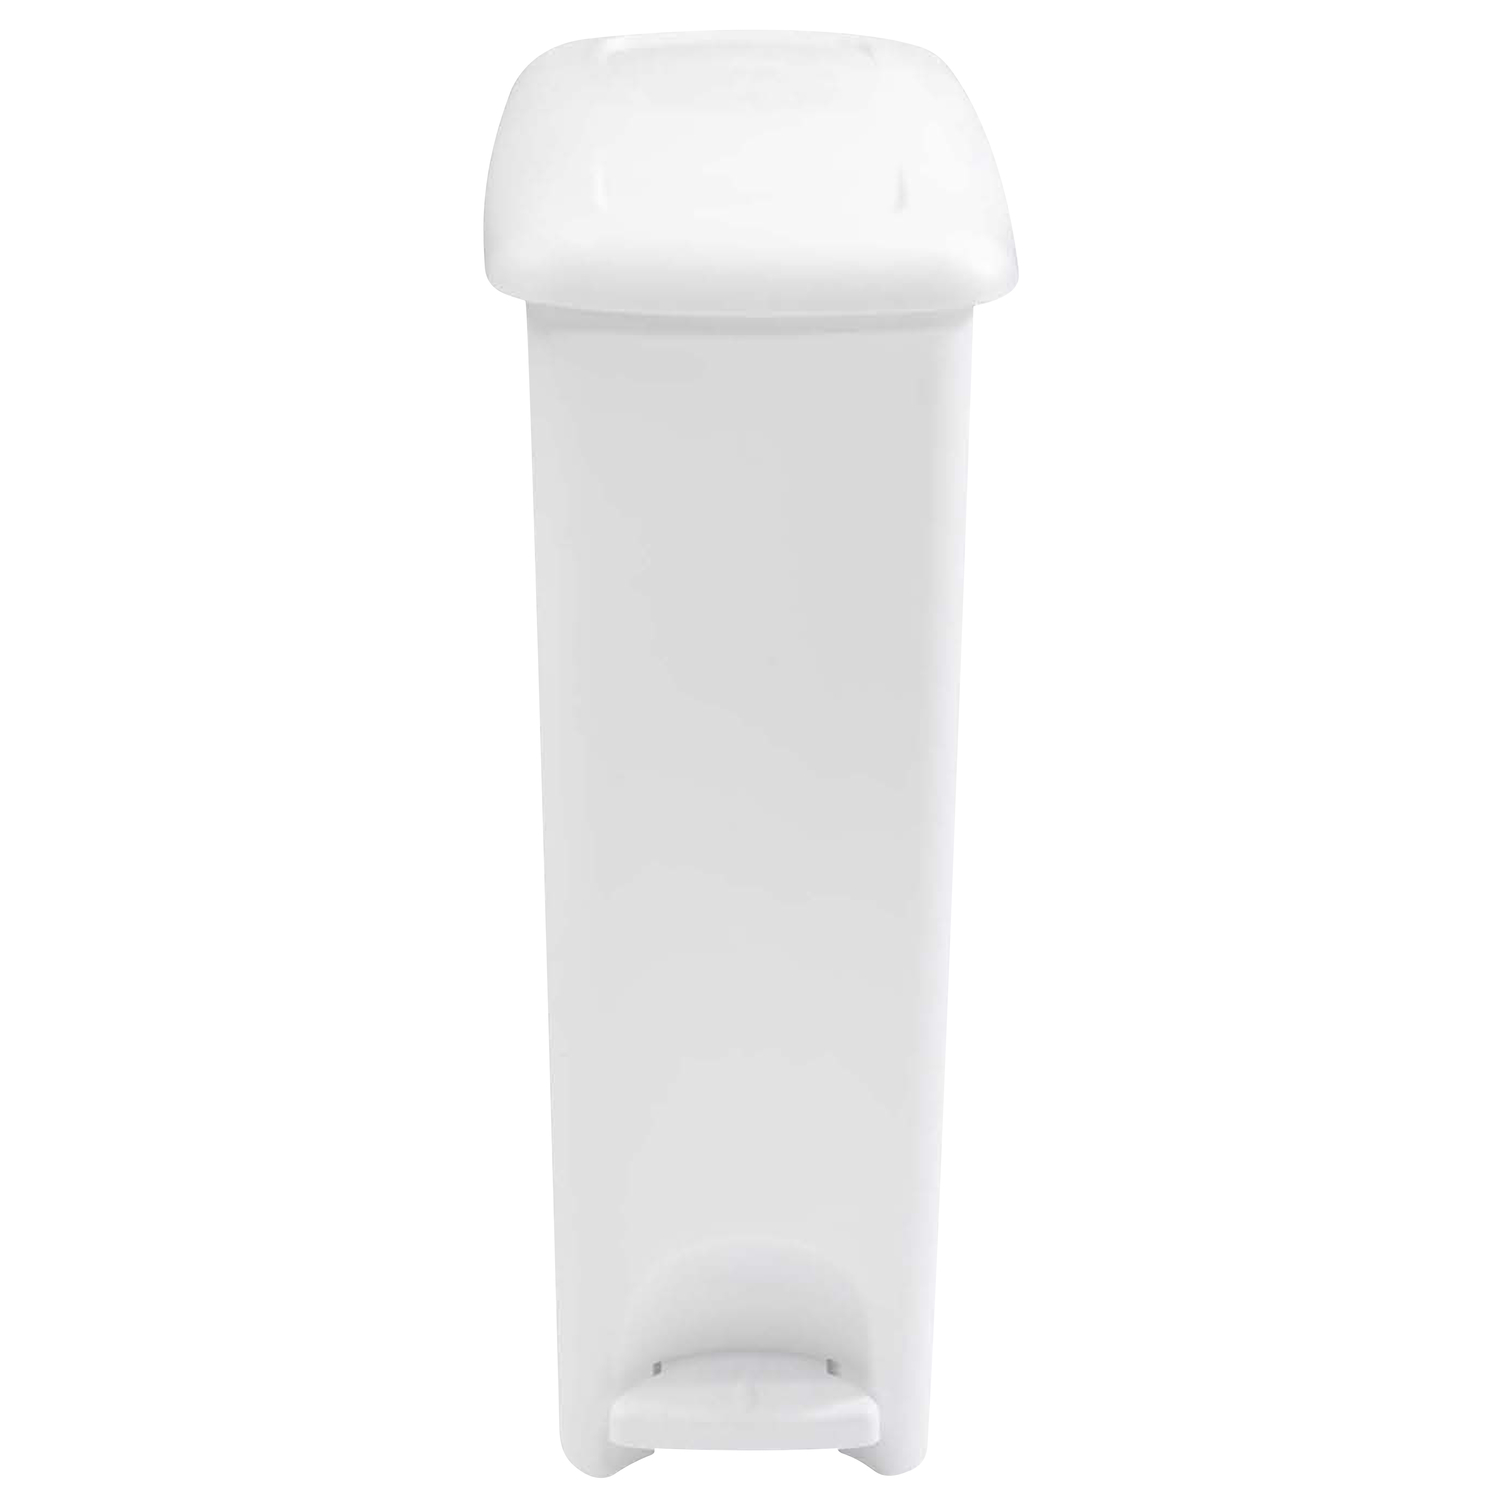 Rubbermaid  White  Slim Step  Wastebasket  45 qt.